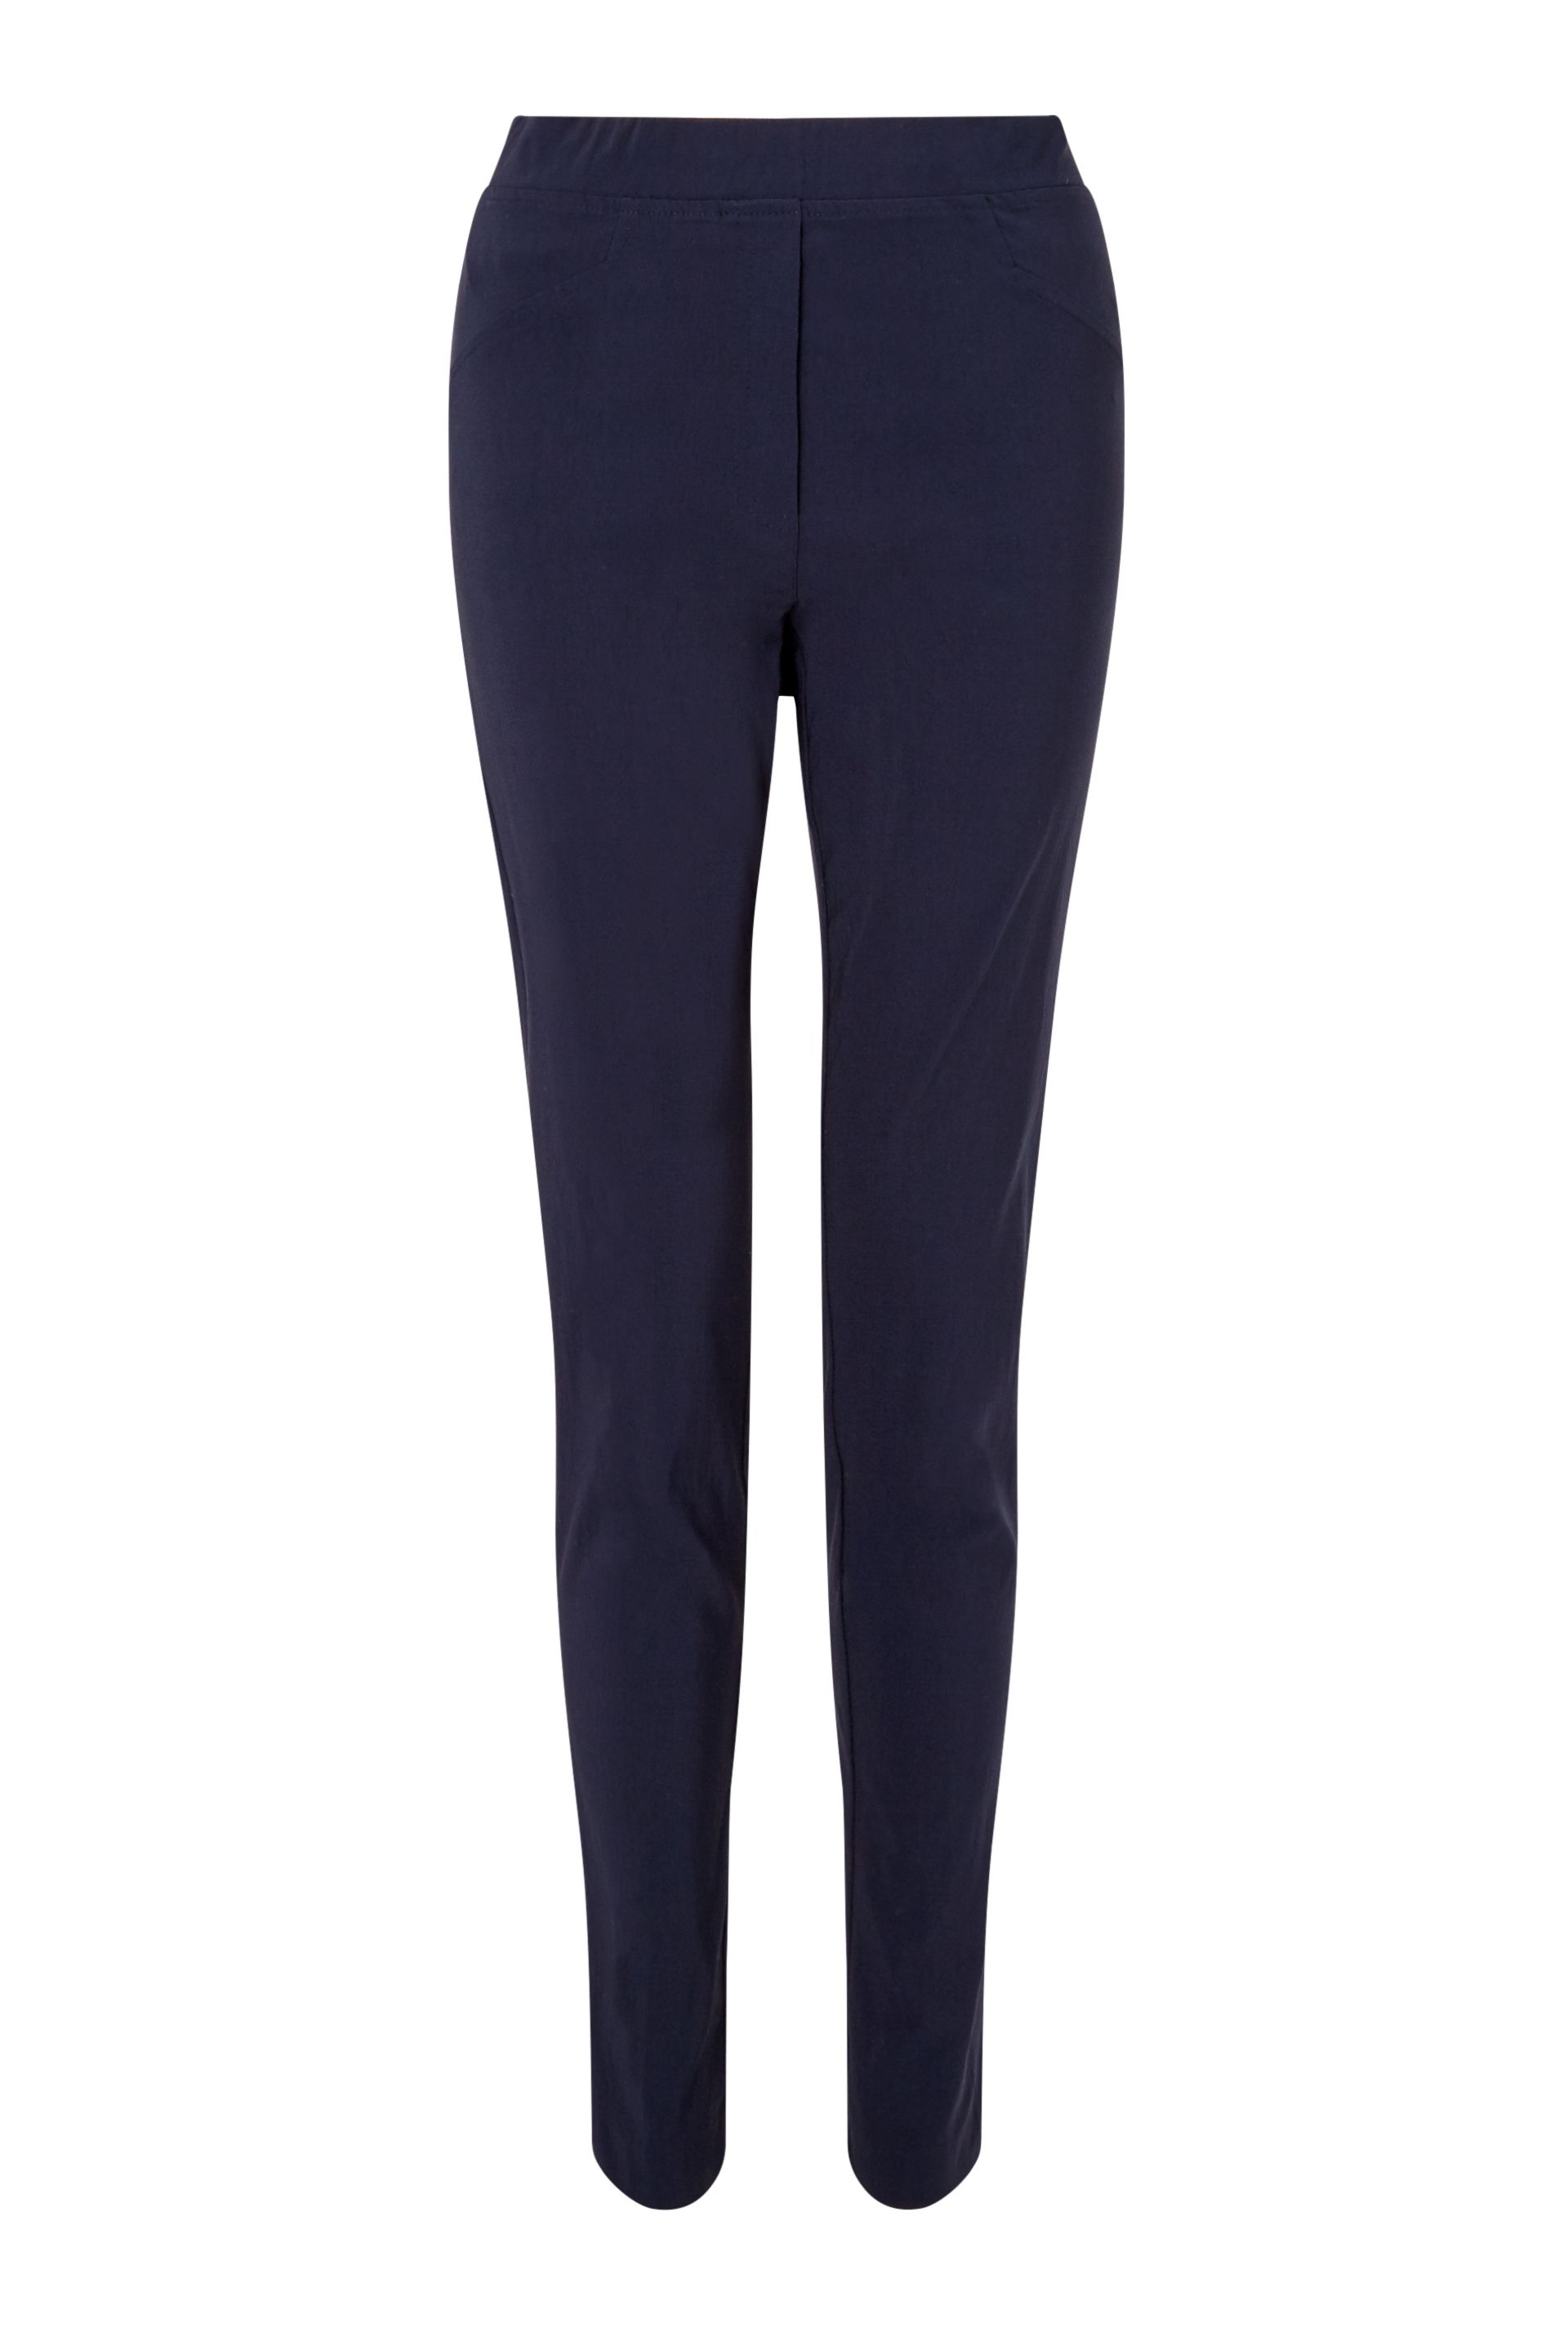 James Lakeland Long Length Pull On Trousers, Blue